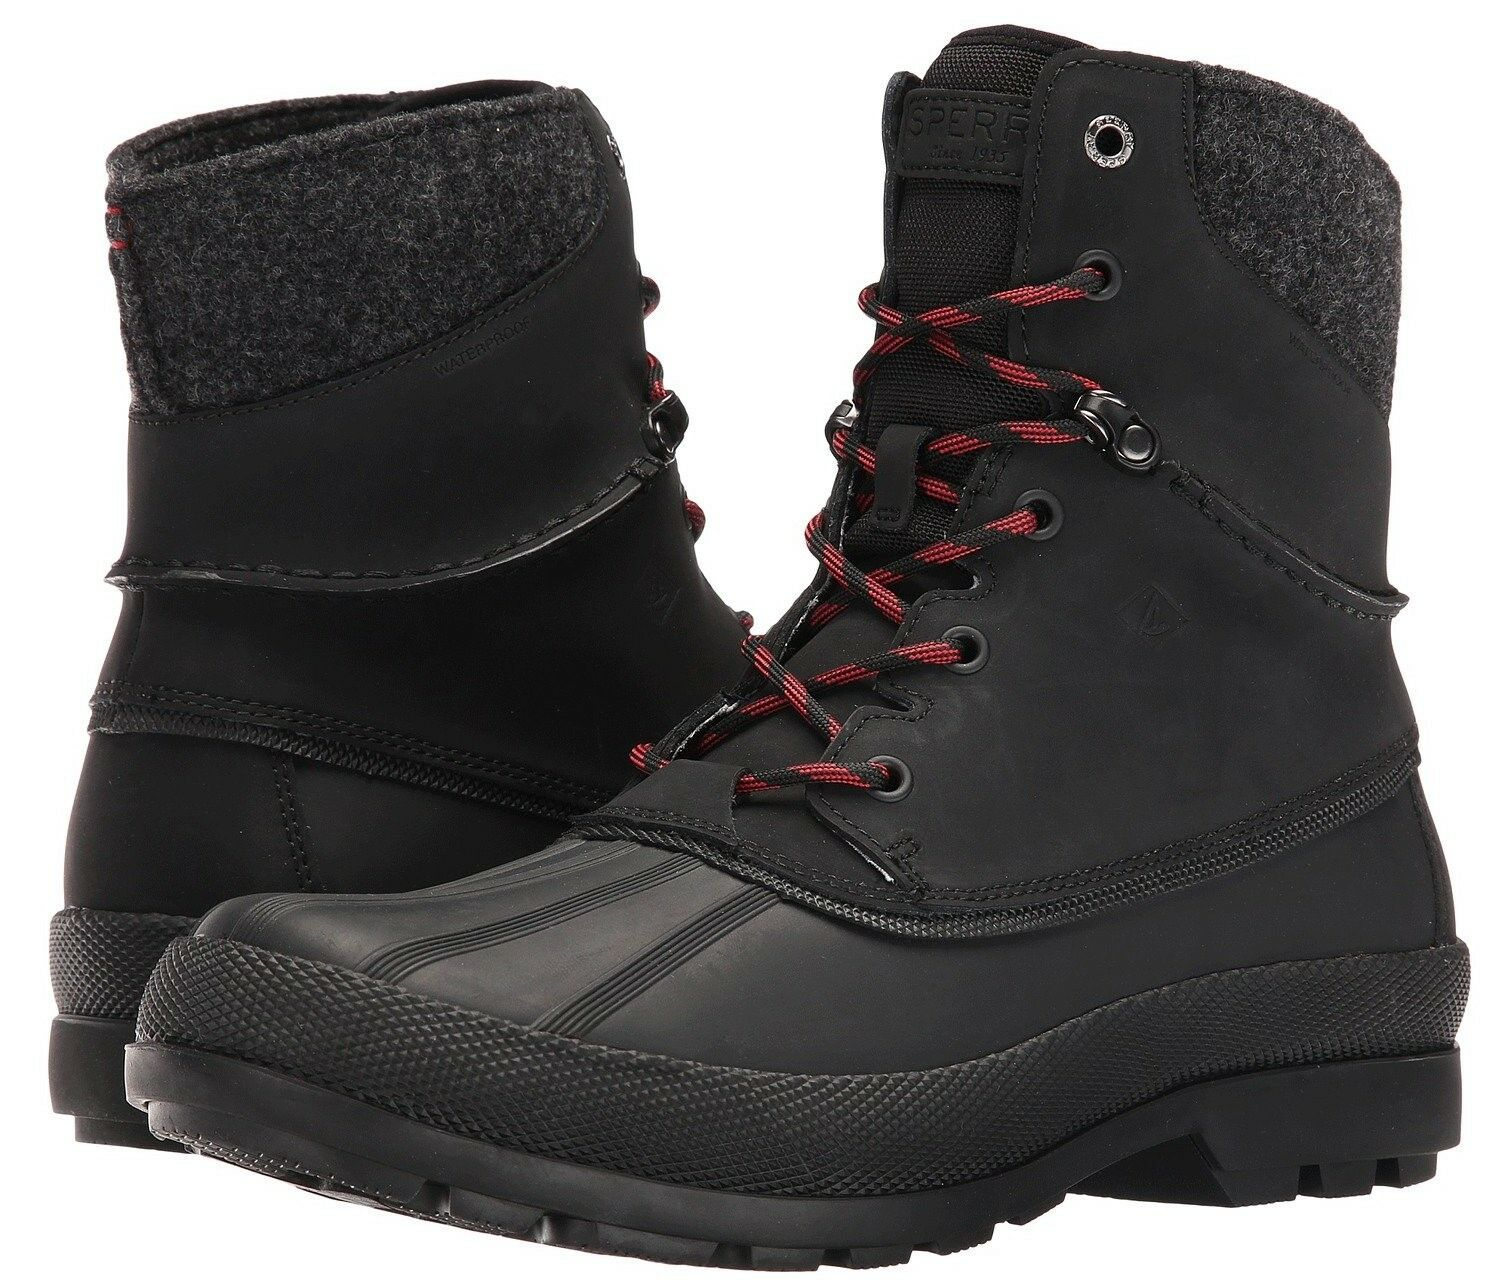 Sperry Top-Sider Cold Bay bota pato de deporte con agarre Vibram Arctic Impermeable